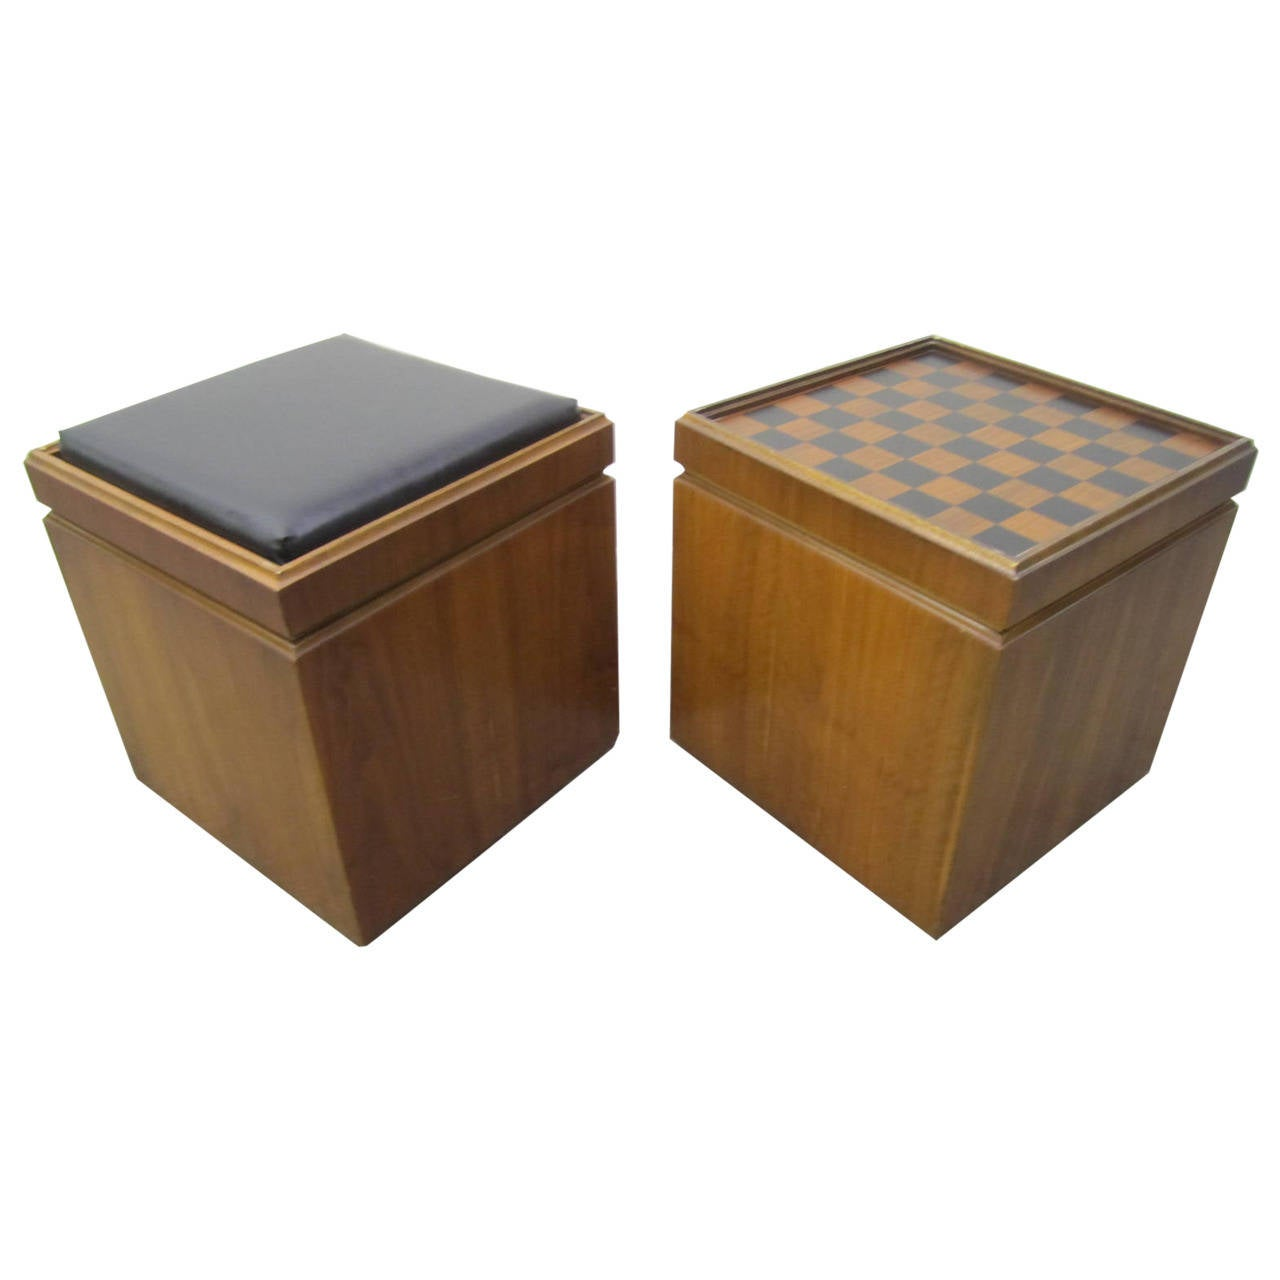 Pair Of Lane Walnut Game Cube Storage Stools, Mid Century Modern For Sale